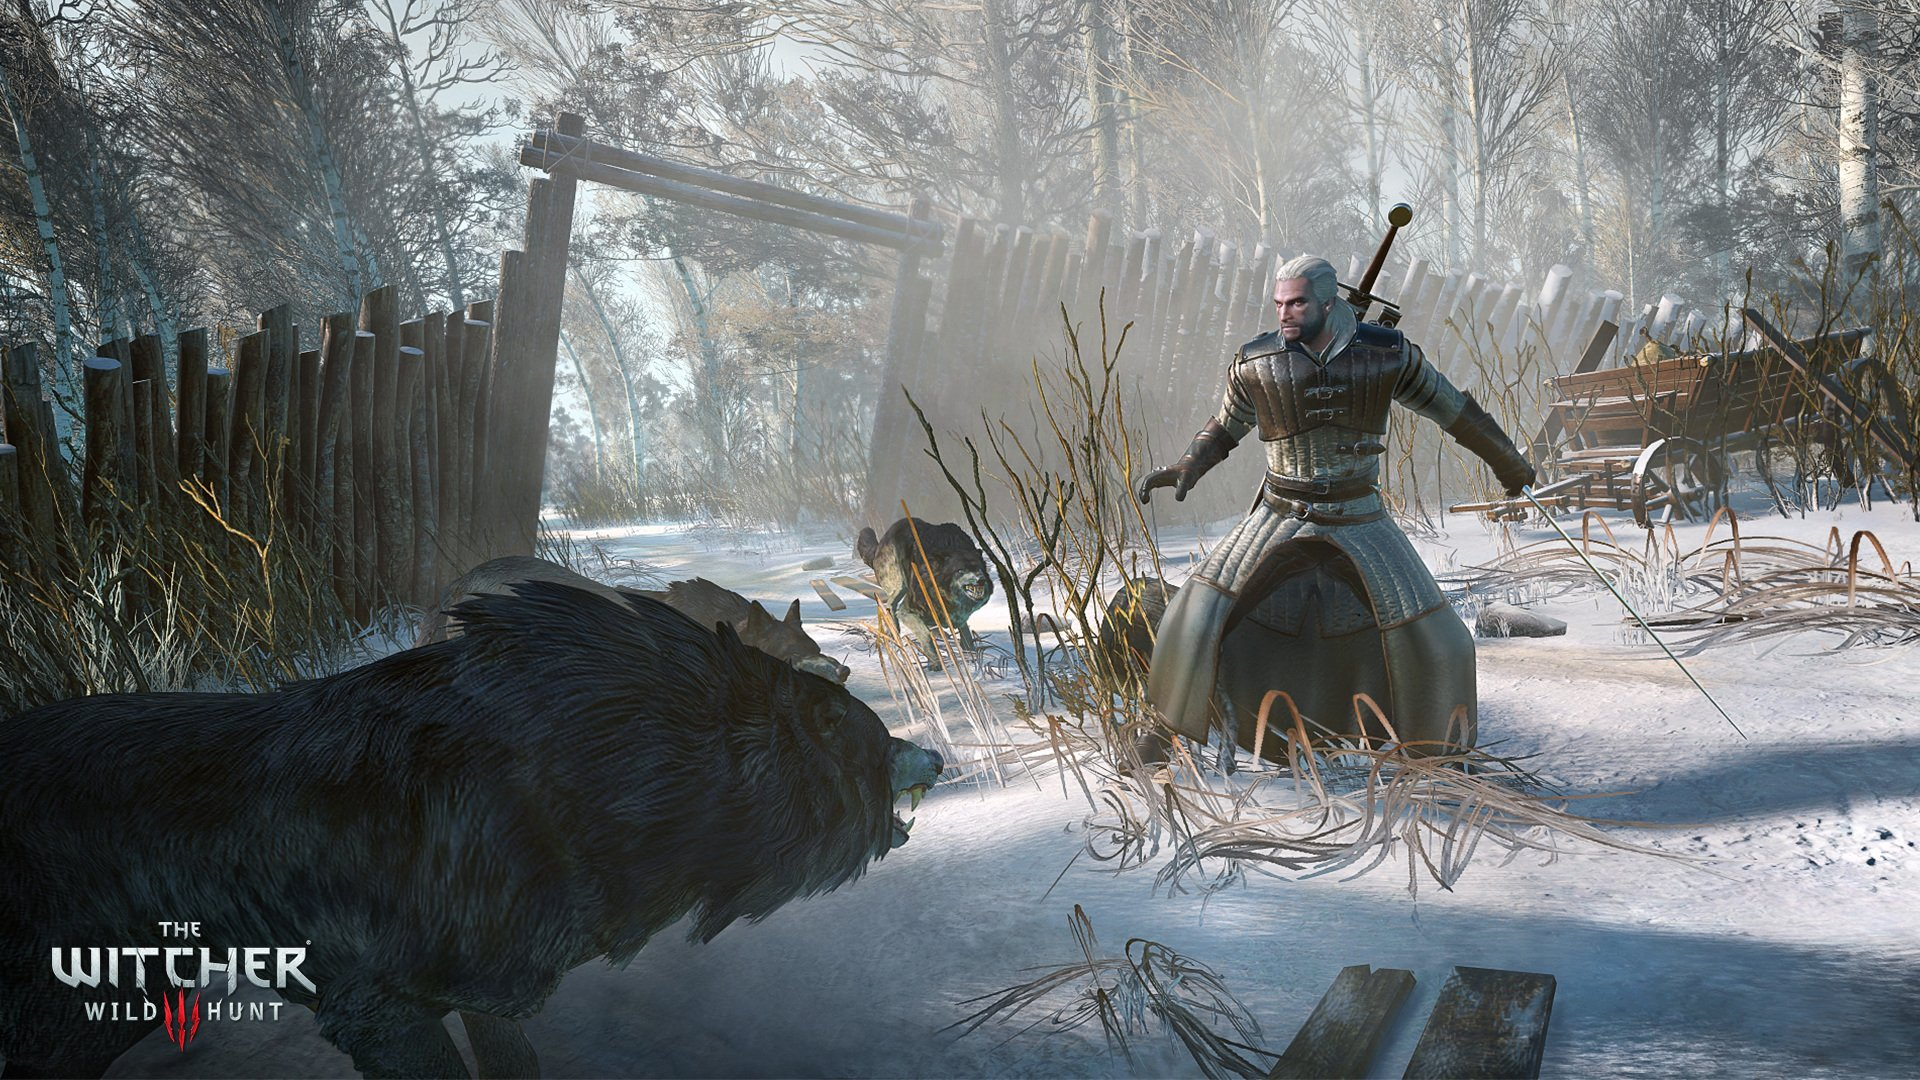 the Collection The Witcher Video Game The Witcher 3 Wild Hunt 547264 1920x1080